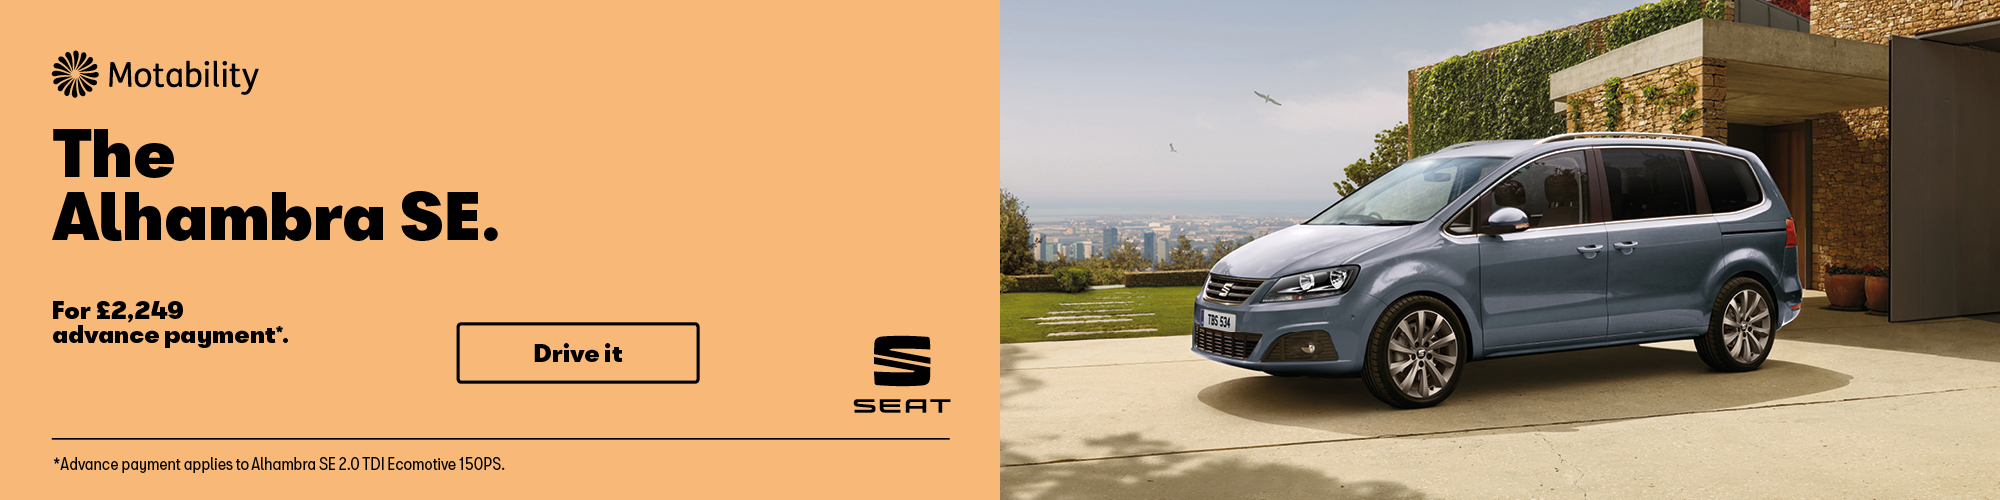 Agnew Autoexchange SEAT Alhambra Motability Offer